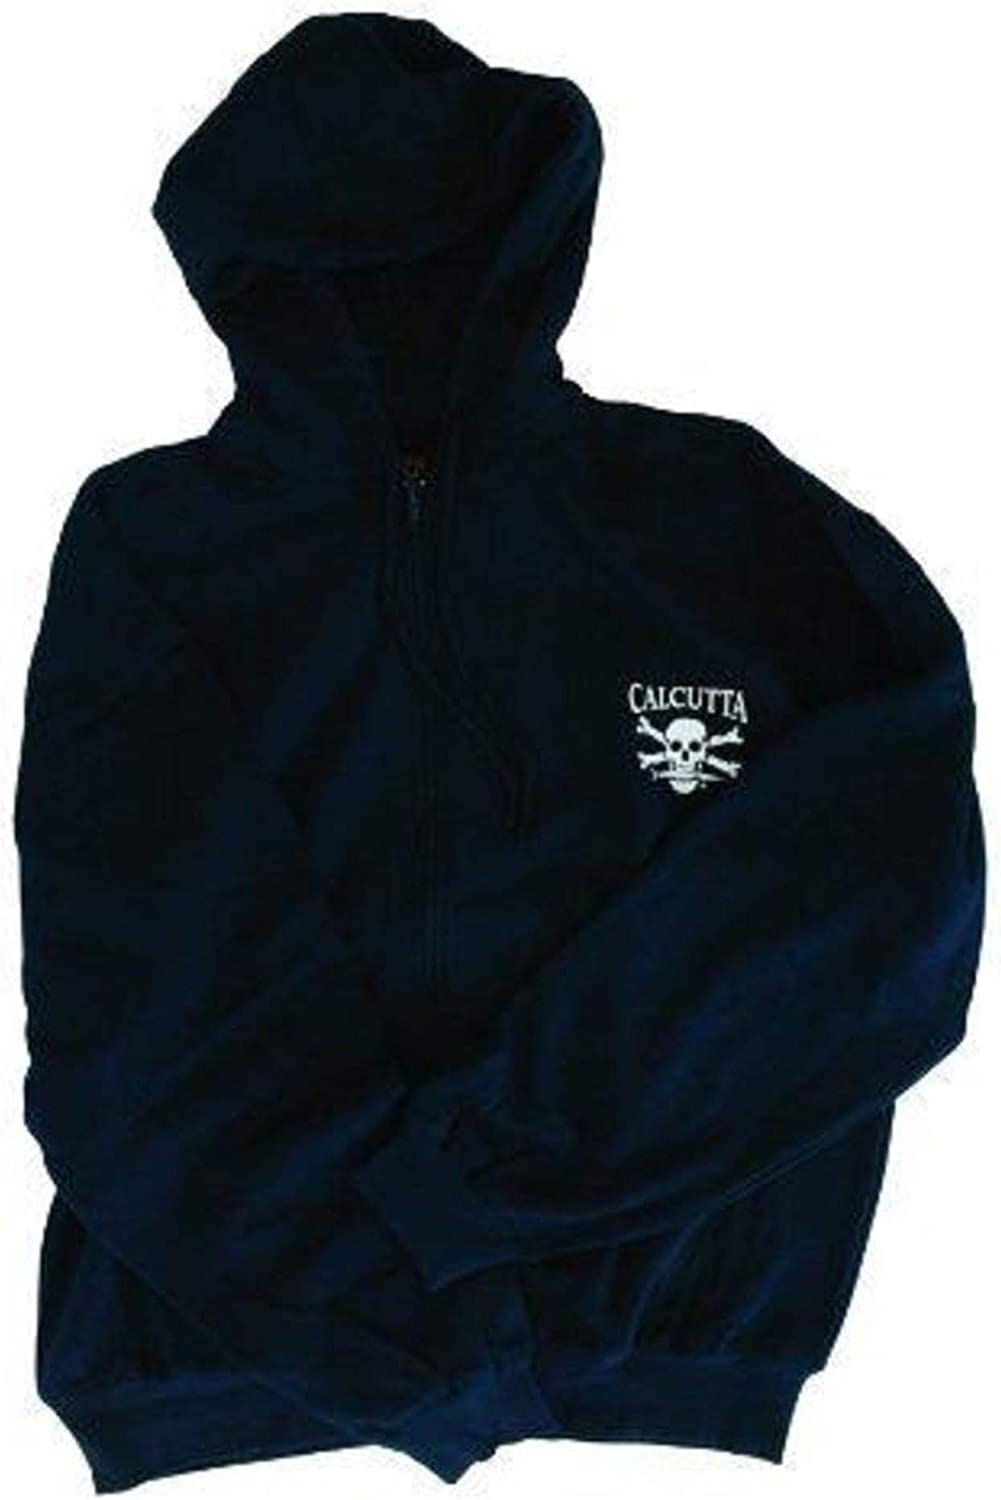 Calcutta Original Logo Full Zipper Hooded Sweatshirt Navy